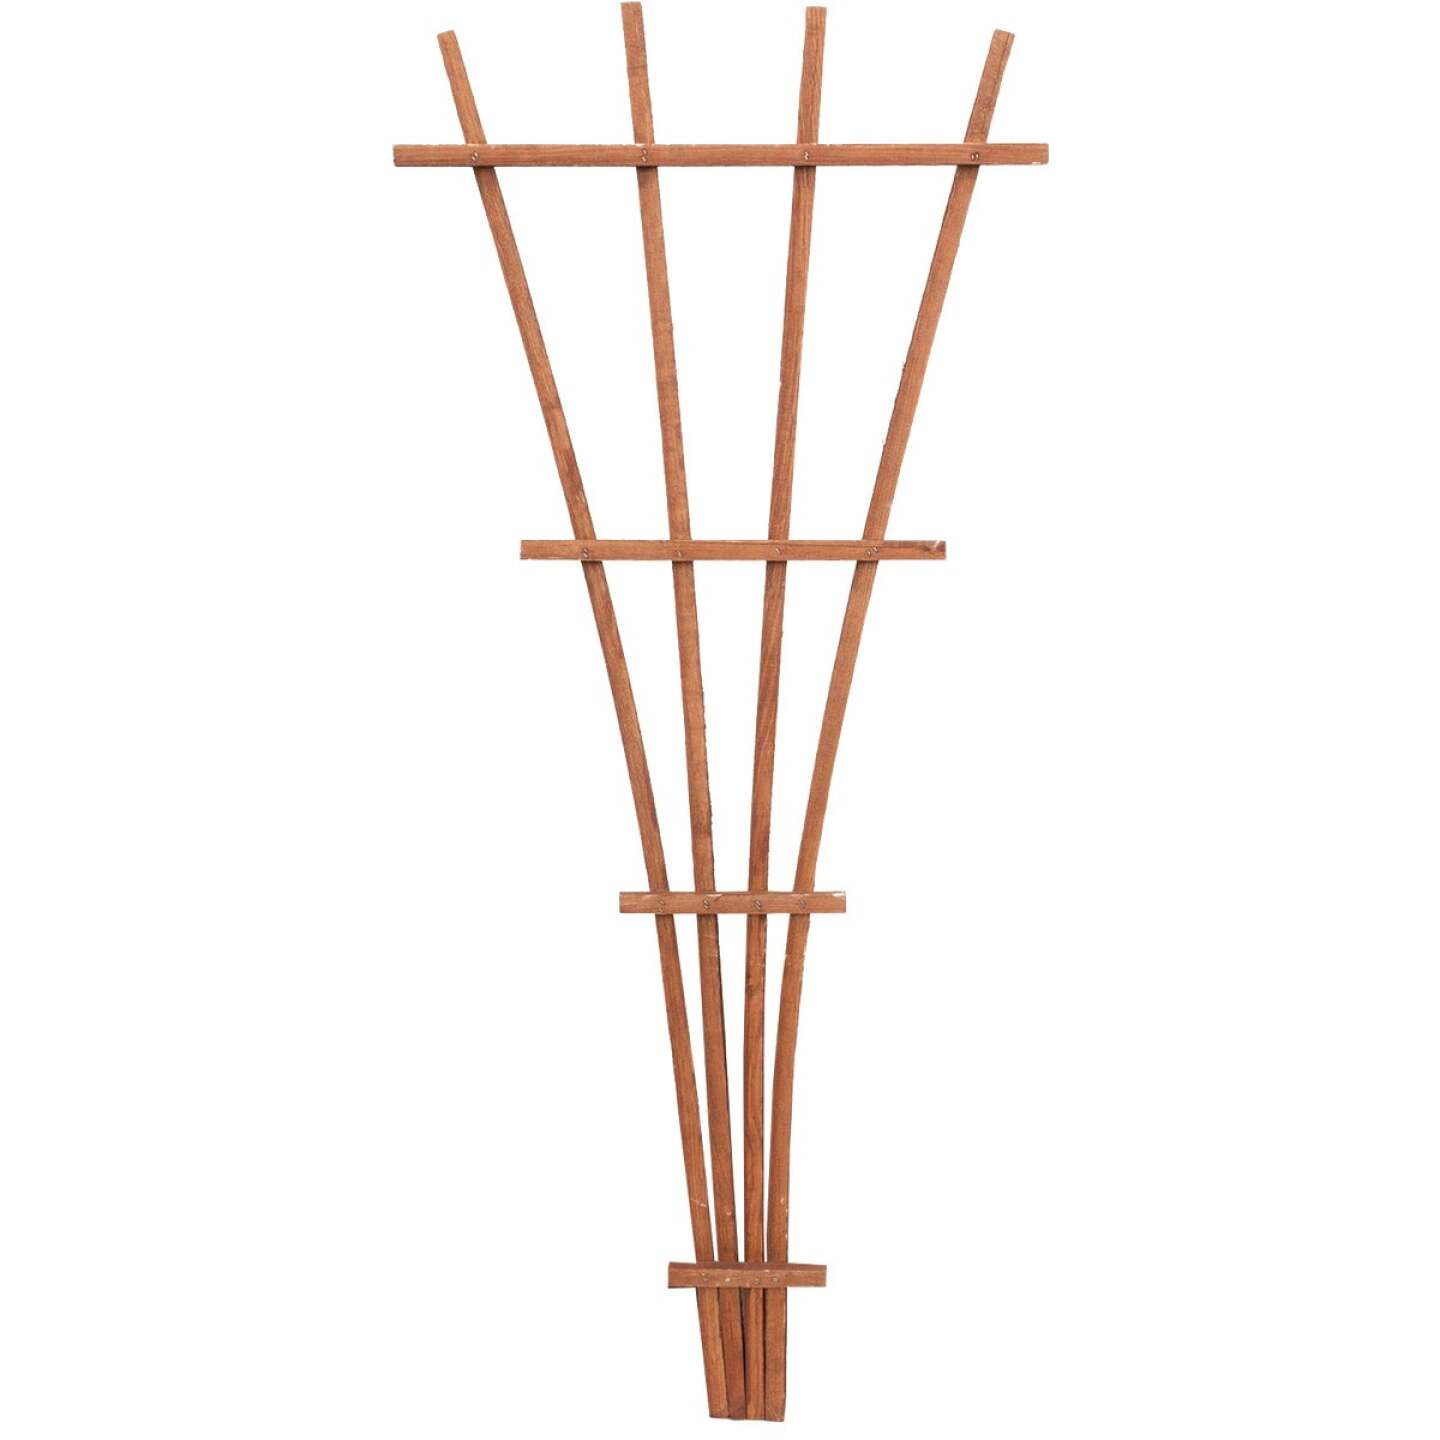 Panacea 48 In. Brown Wood Fan Trellis Image 1